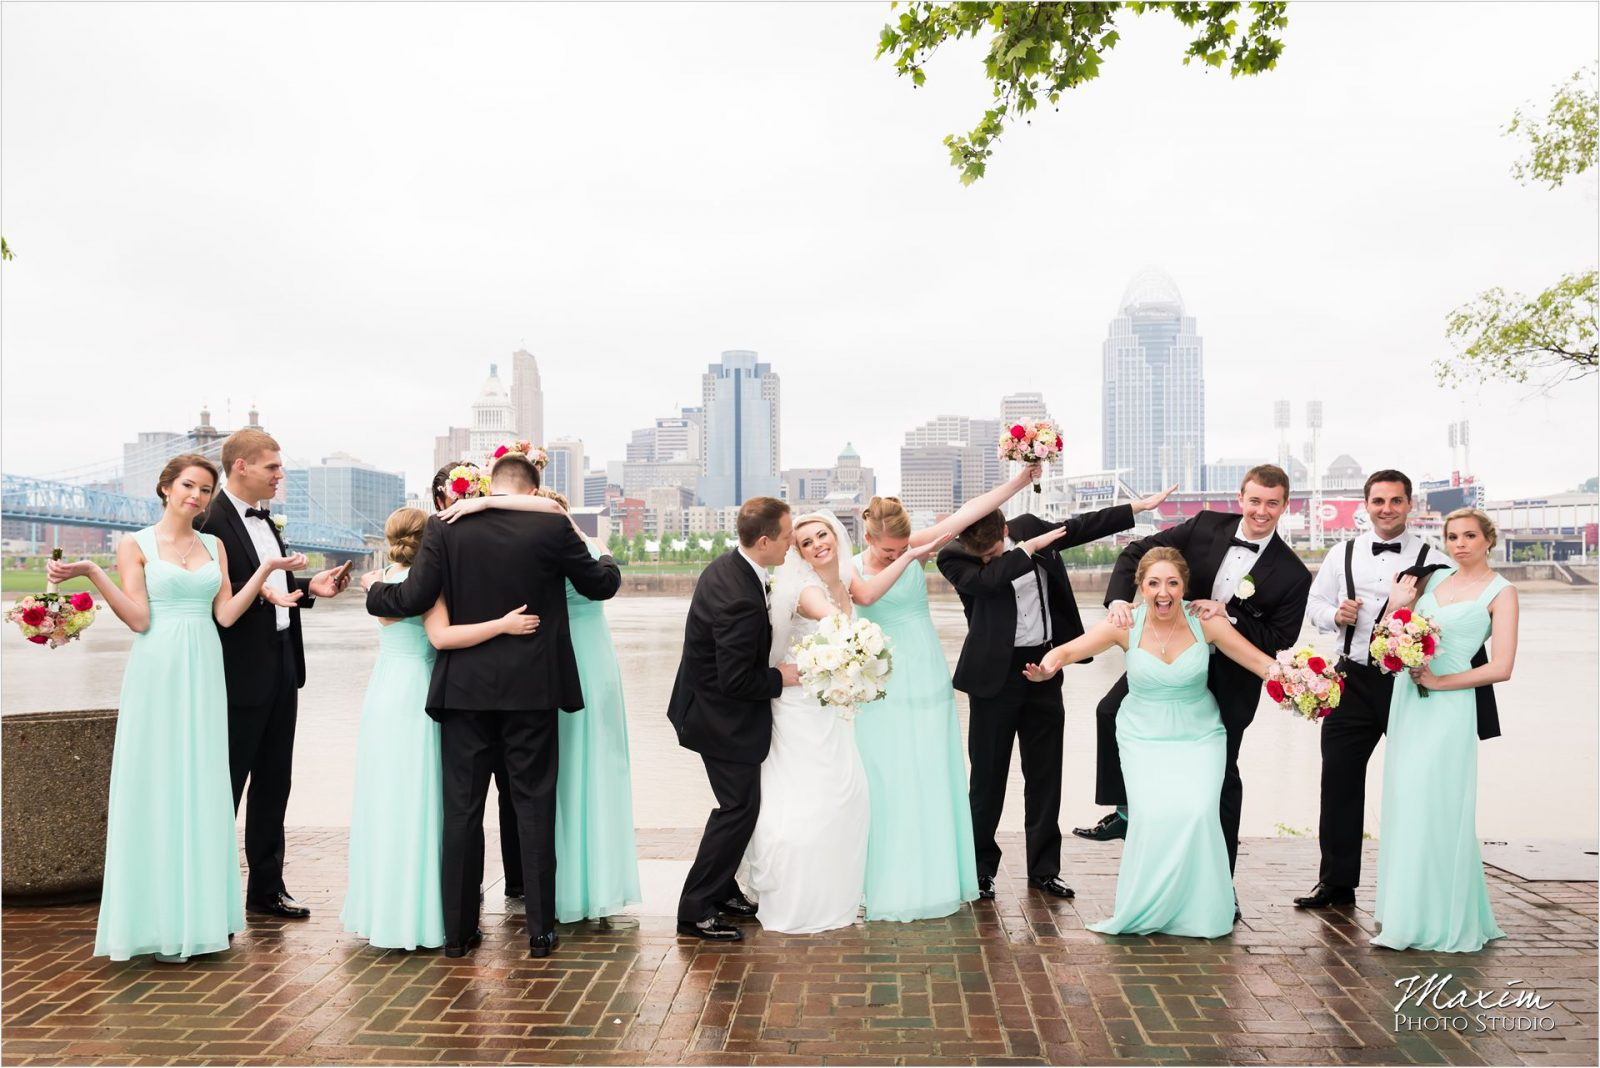 Yeatman's Cove Cincinnati Wedding pictures bride groom bridal party cincinnati skyline